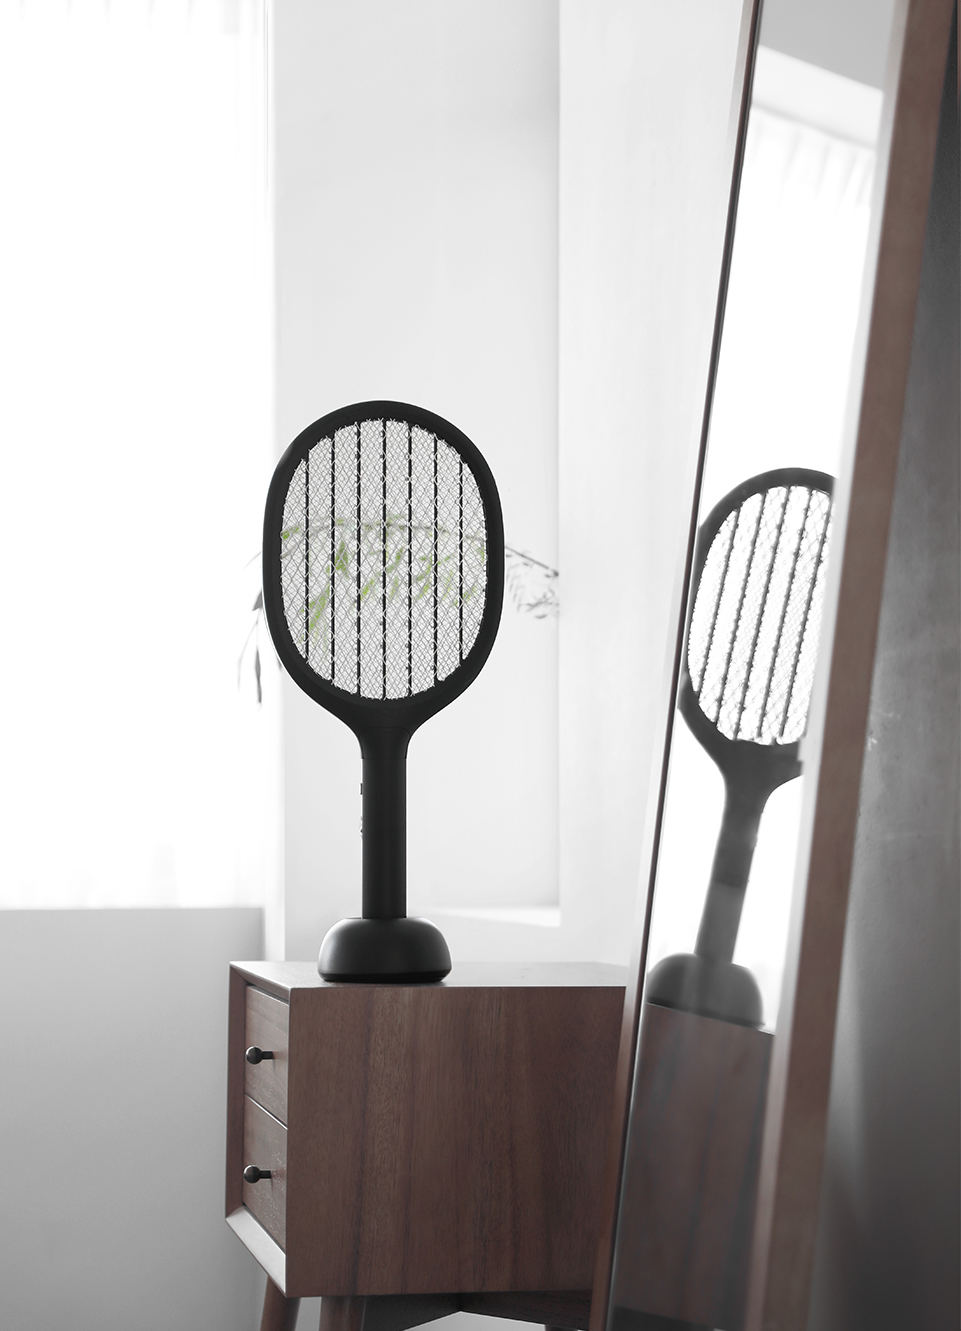 p1-electric mosquito swatter images